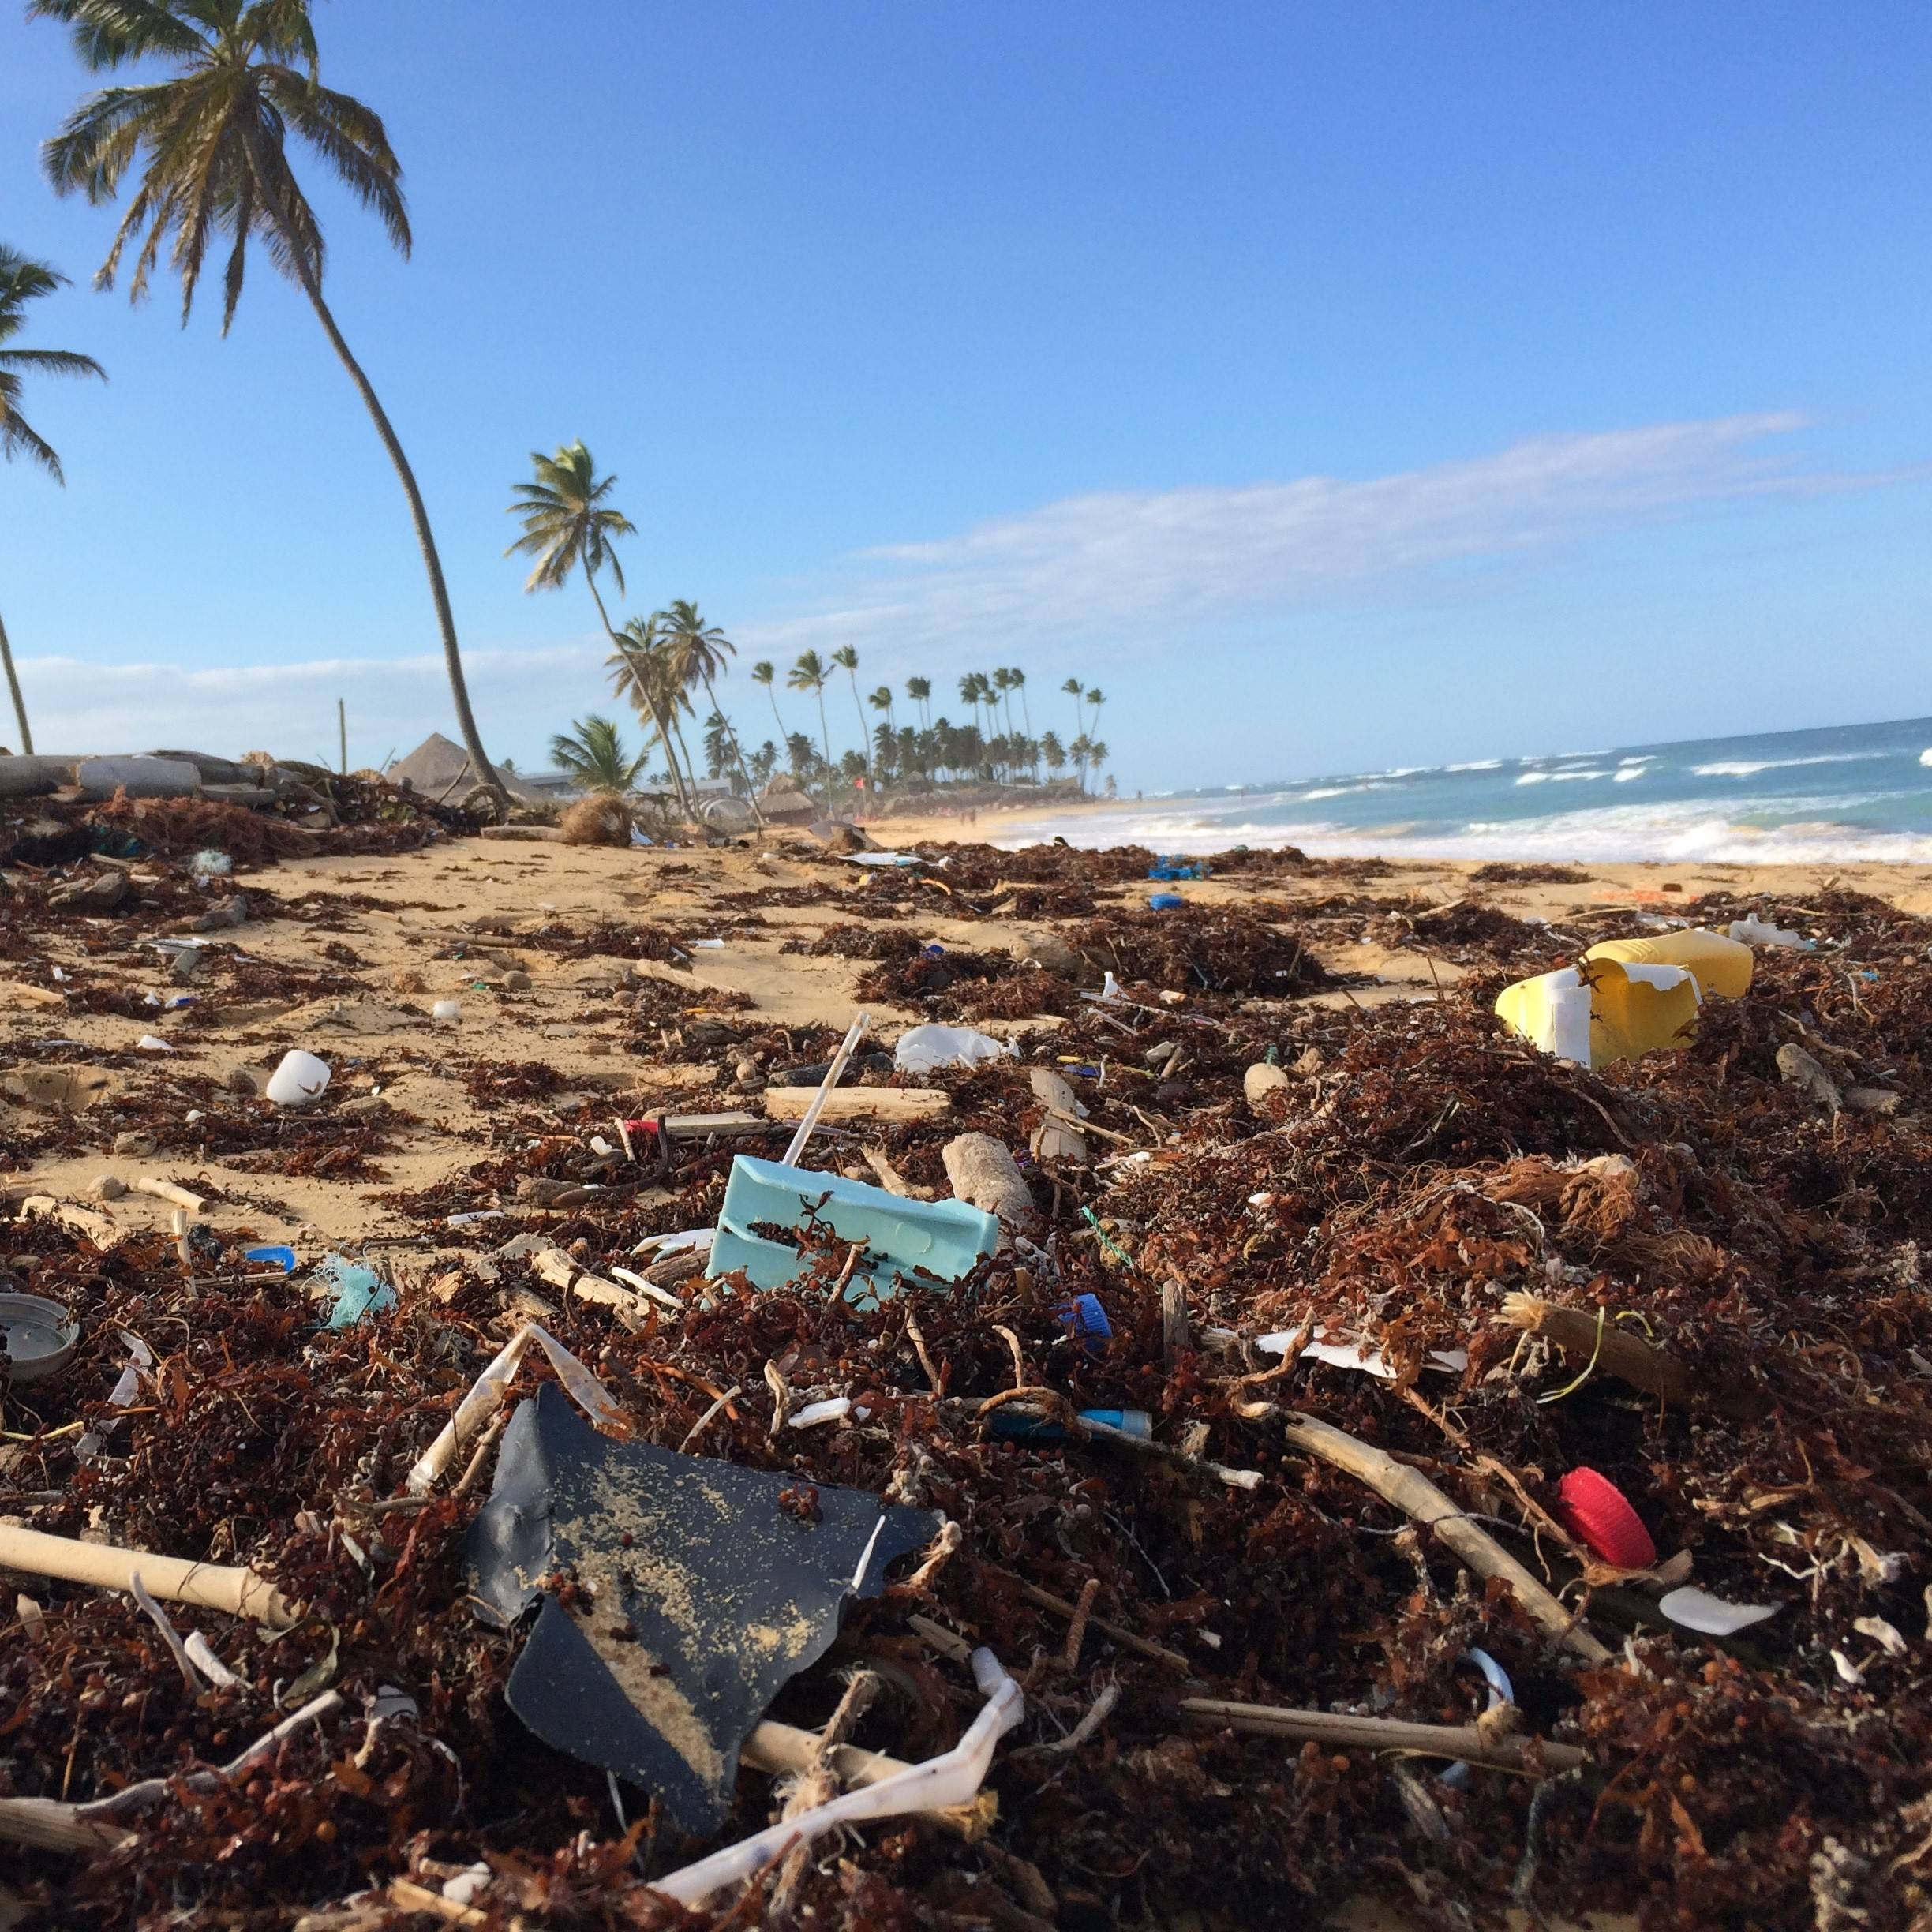 A tropical beach covered in plastic. Well in need of a beach clean up.